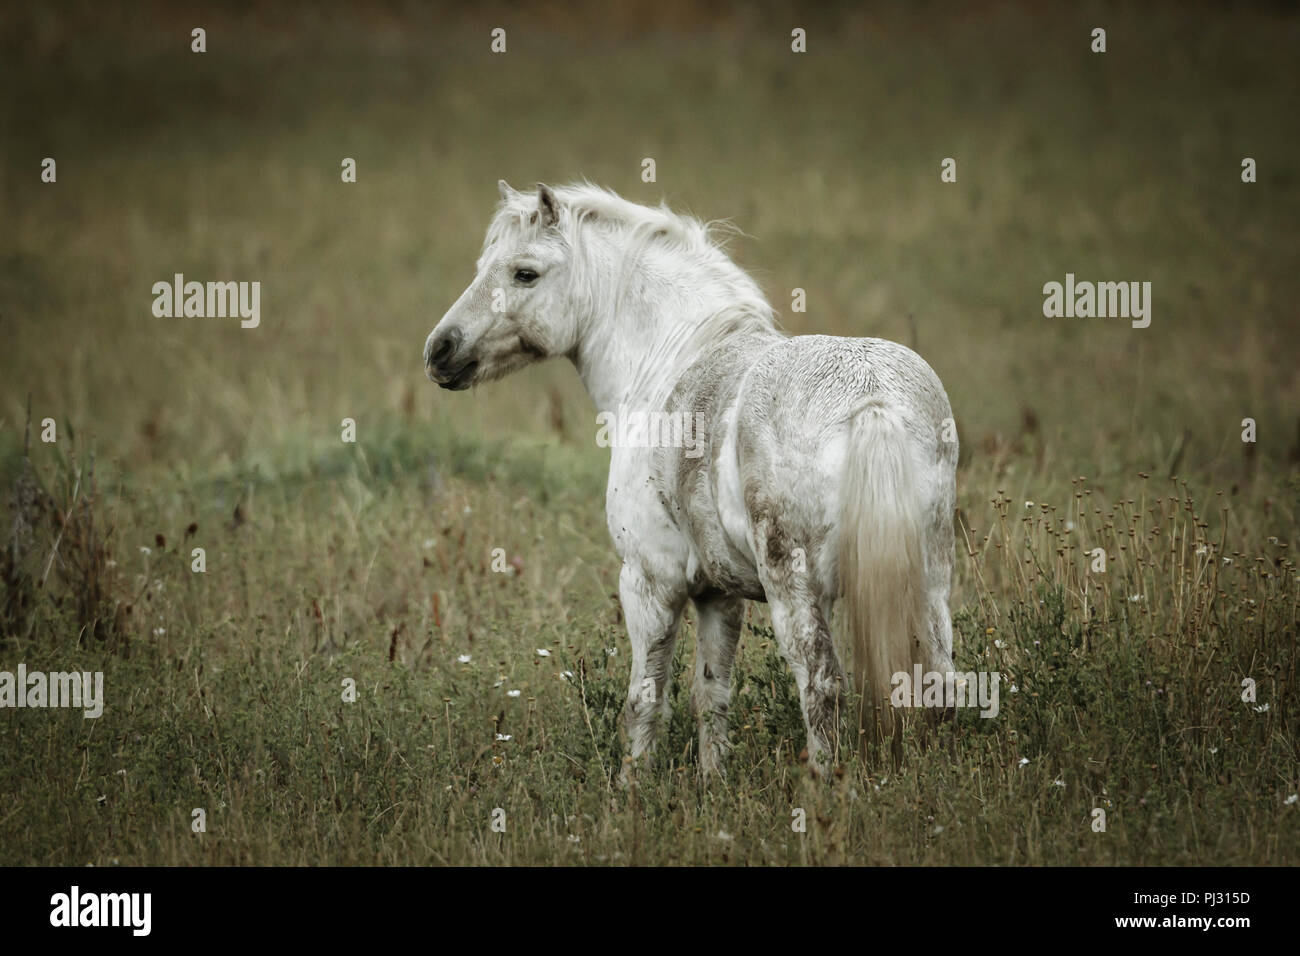 A small white colored horse stands in a field near Hauser, Idaho. - Stock Image